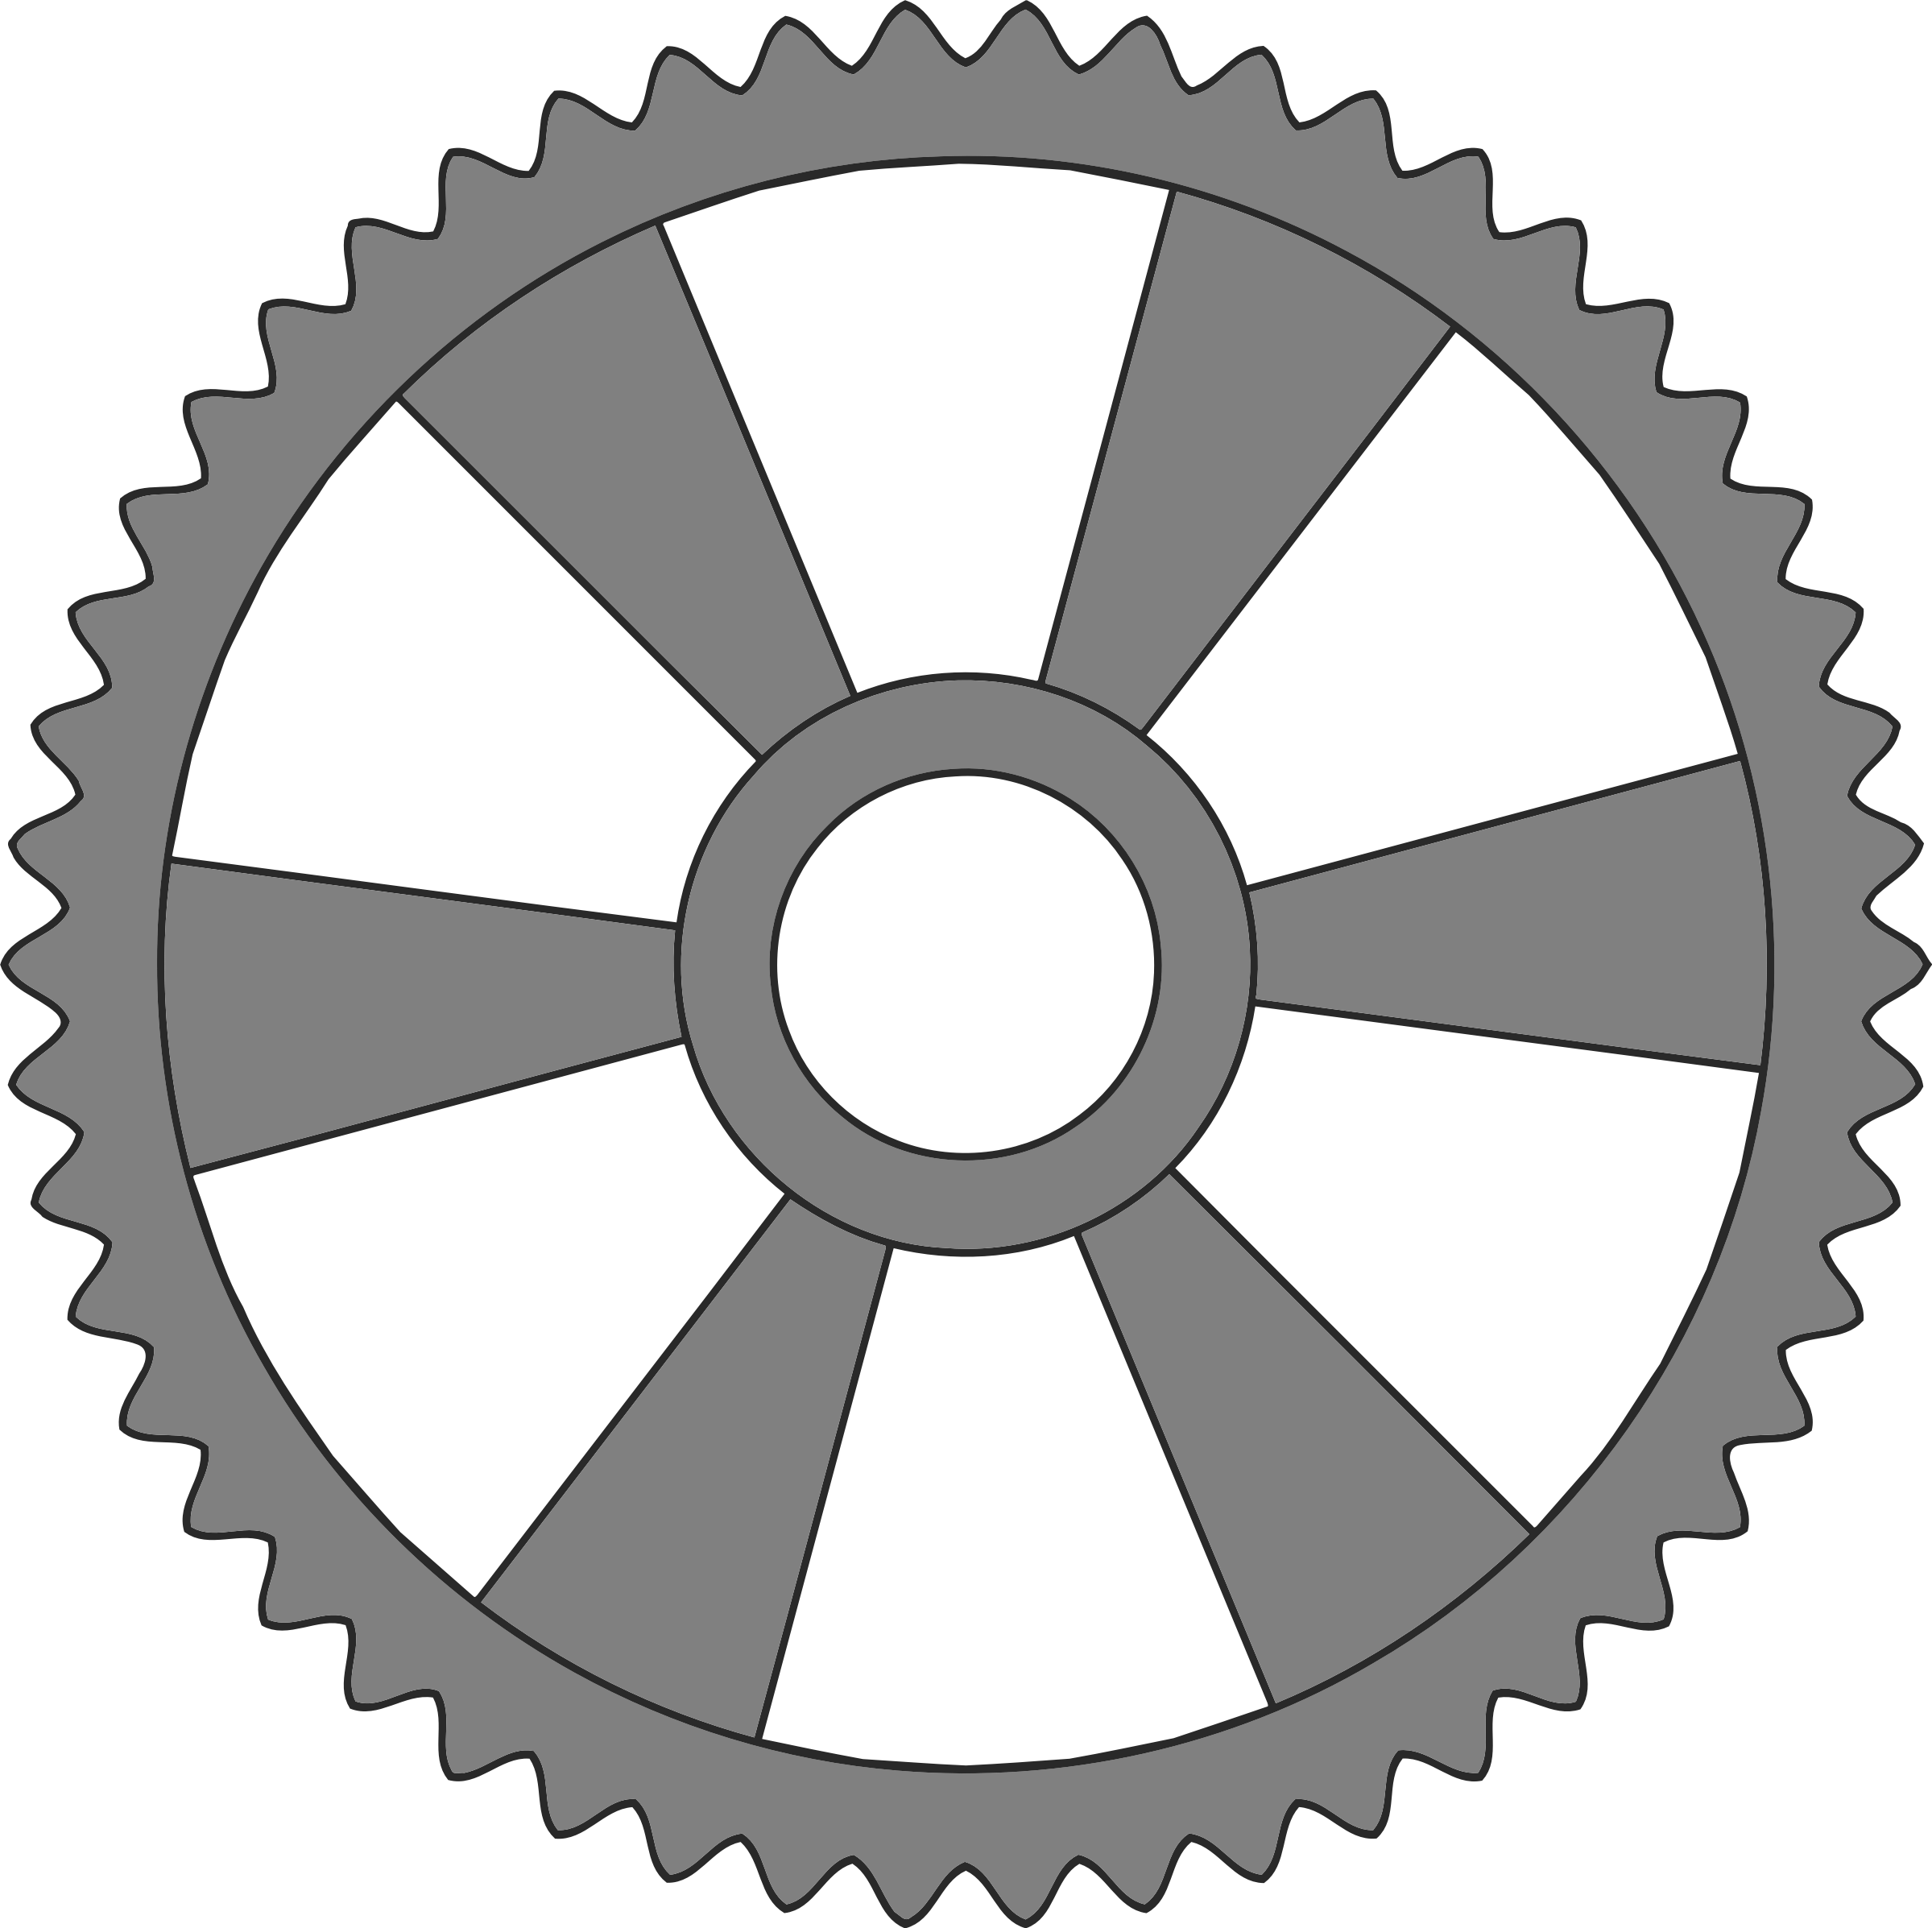 50-tooth gear with radial spokes by Firkin